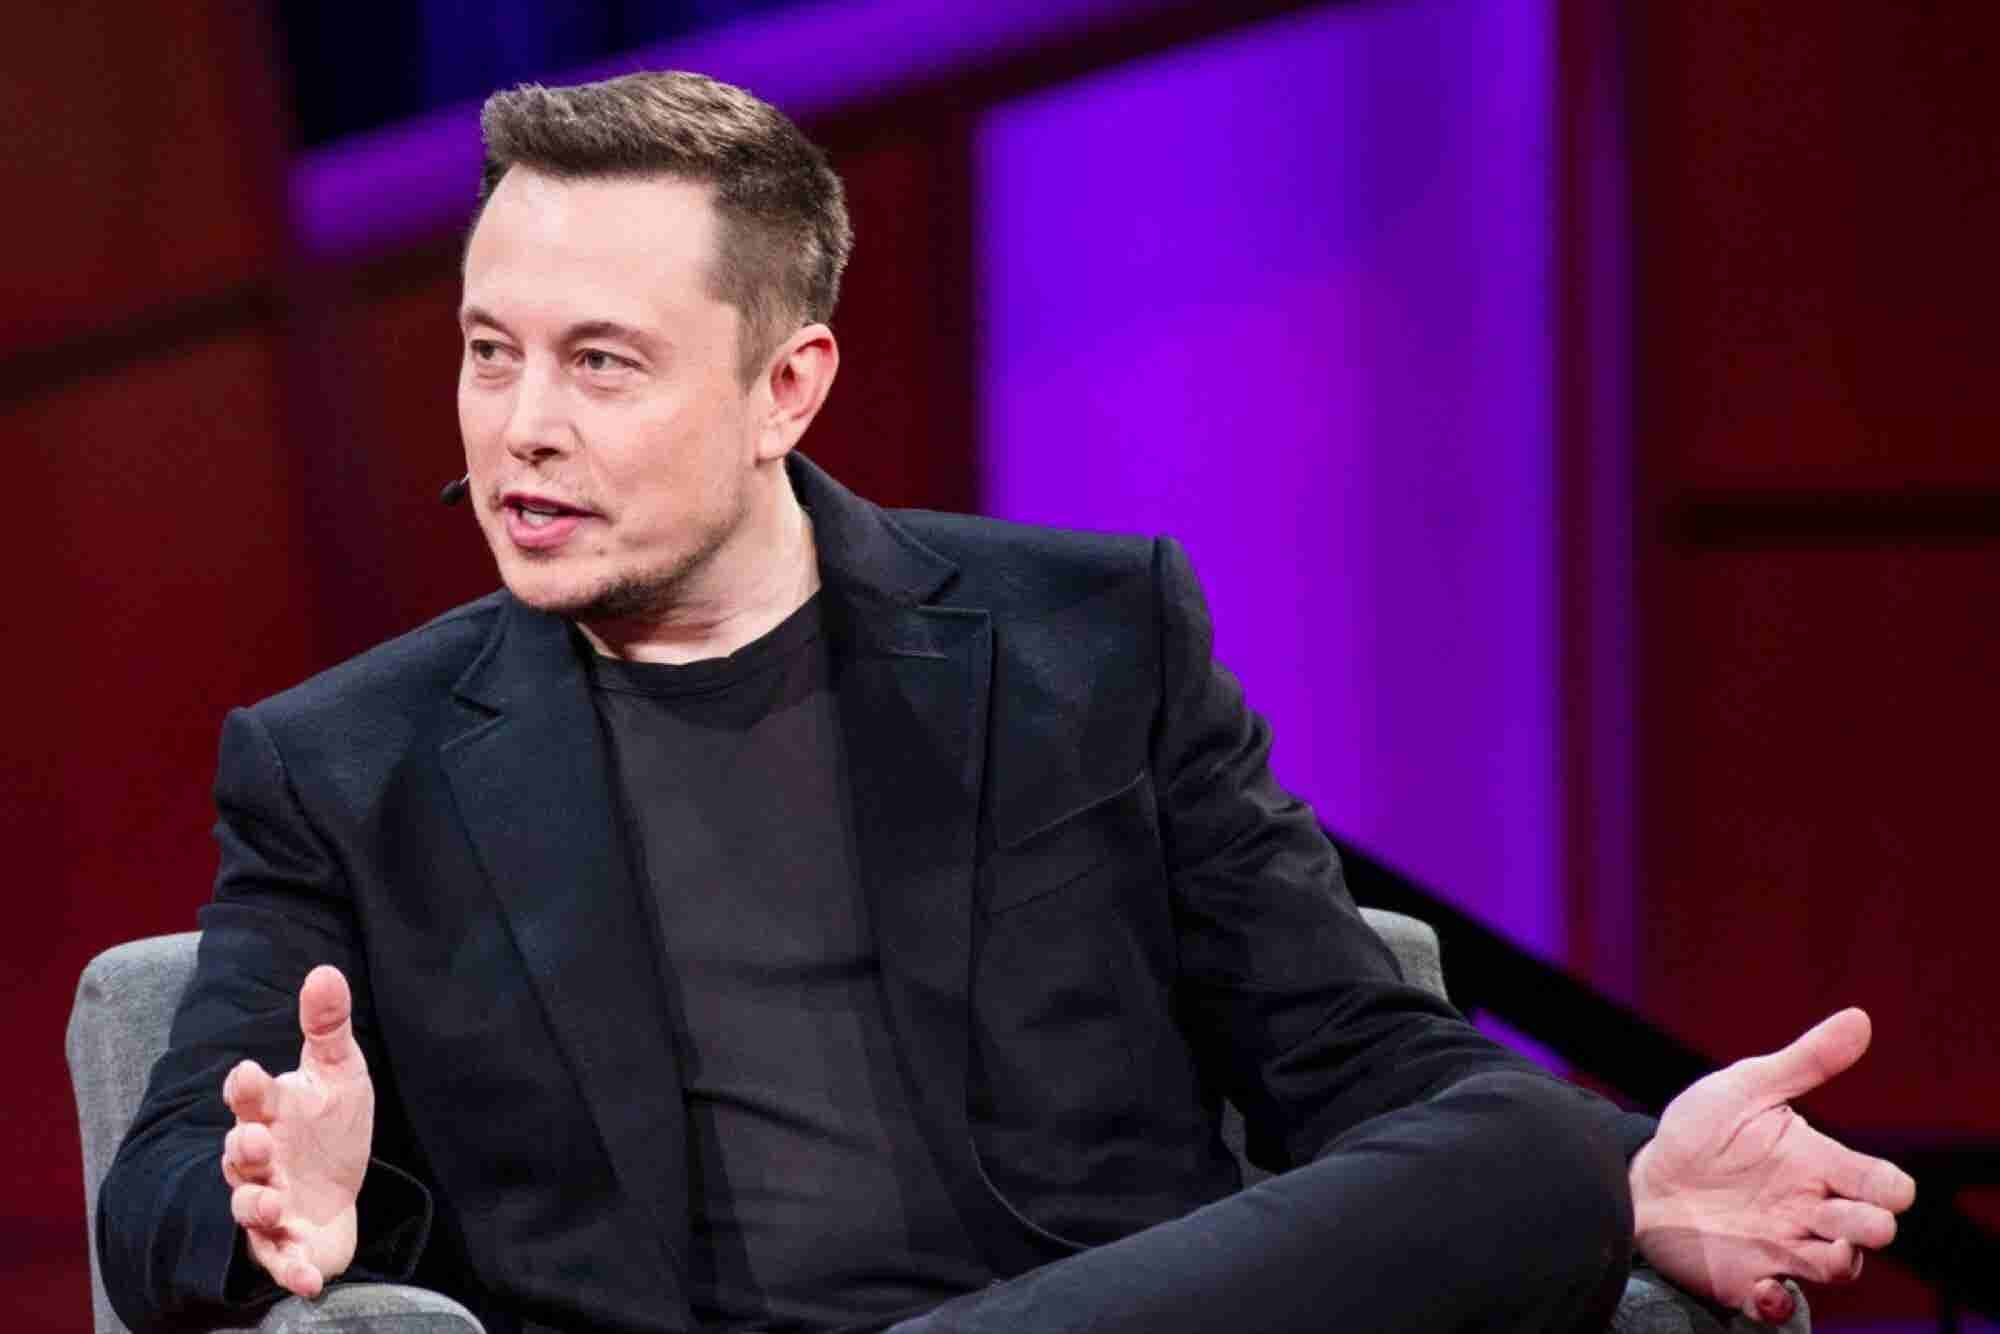 Elon Musk Says Mark Zuckerberg's Understanding of AI Is 'Limited' After the Facebook CEO Called His Warnings 'Irresponsible'